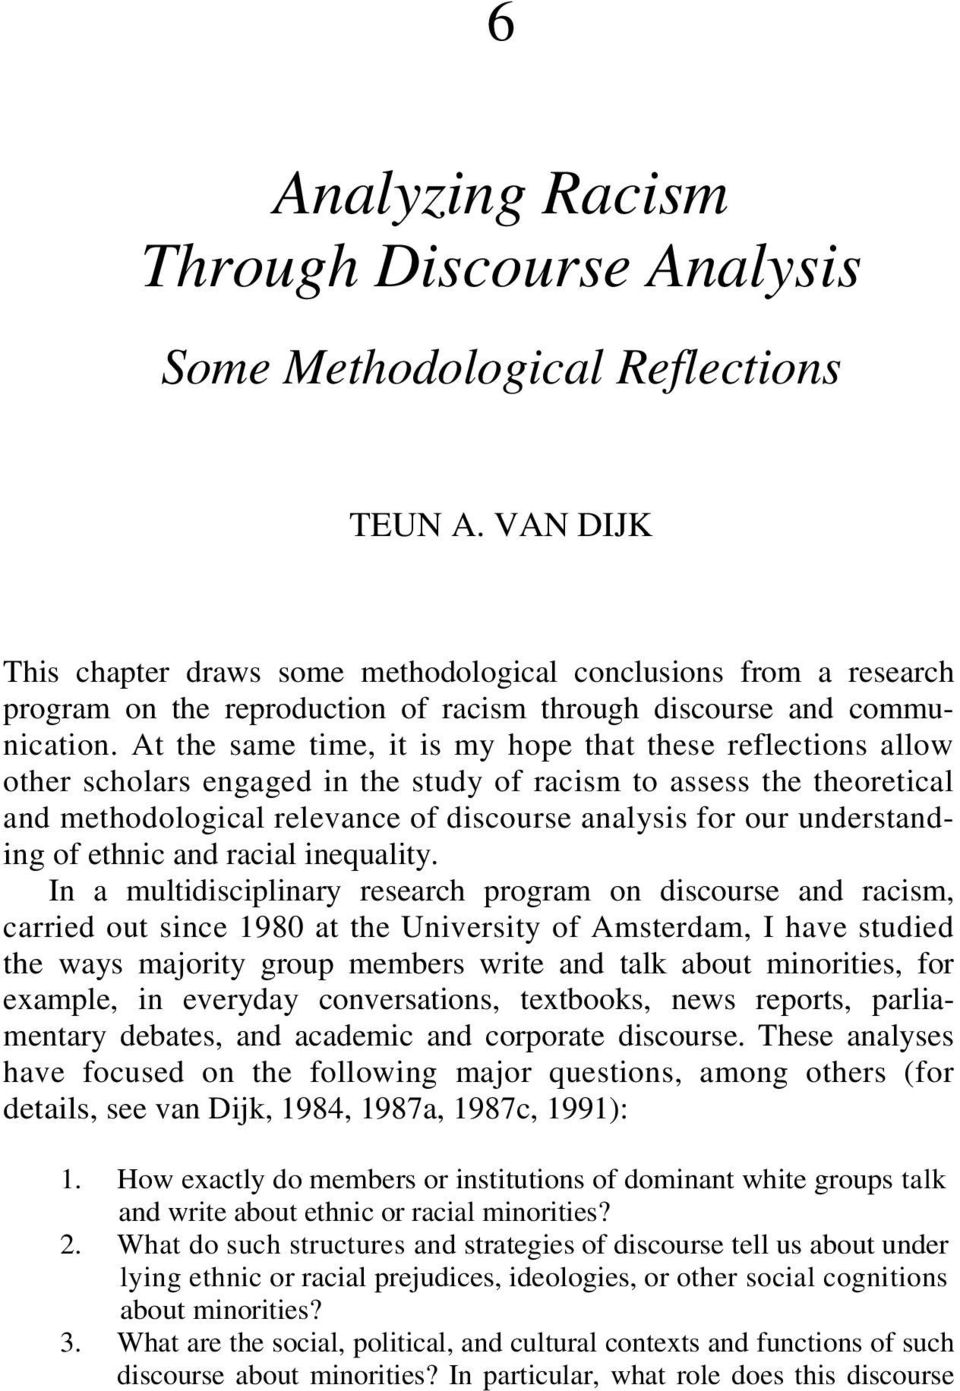 At the same time, it is my hope that these reflections allow other scholars engaged in the study of racism to assess the theoretical and methodological relevance of discourse analysis for our